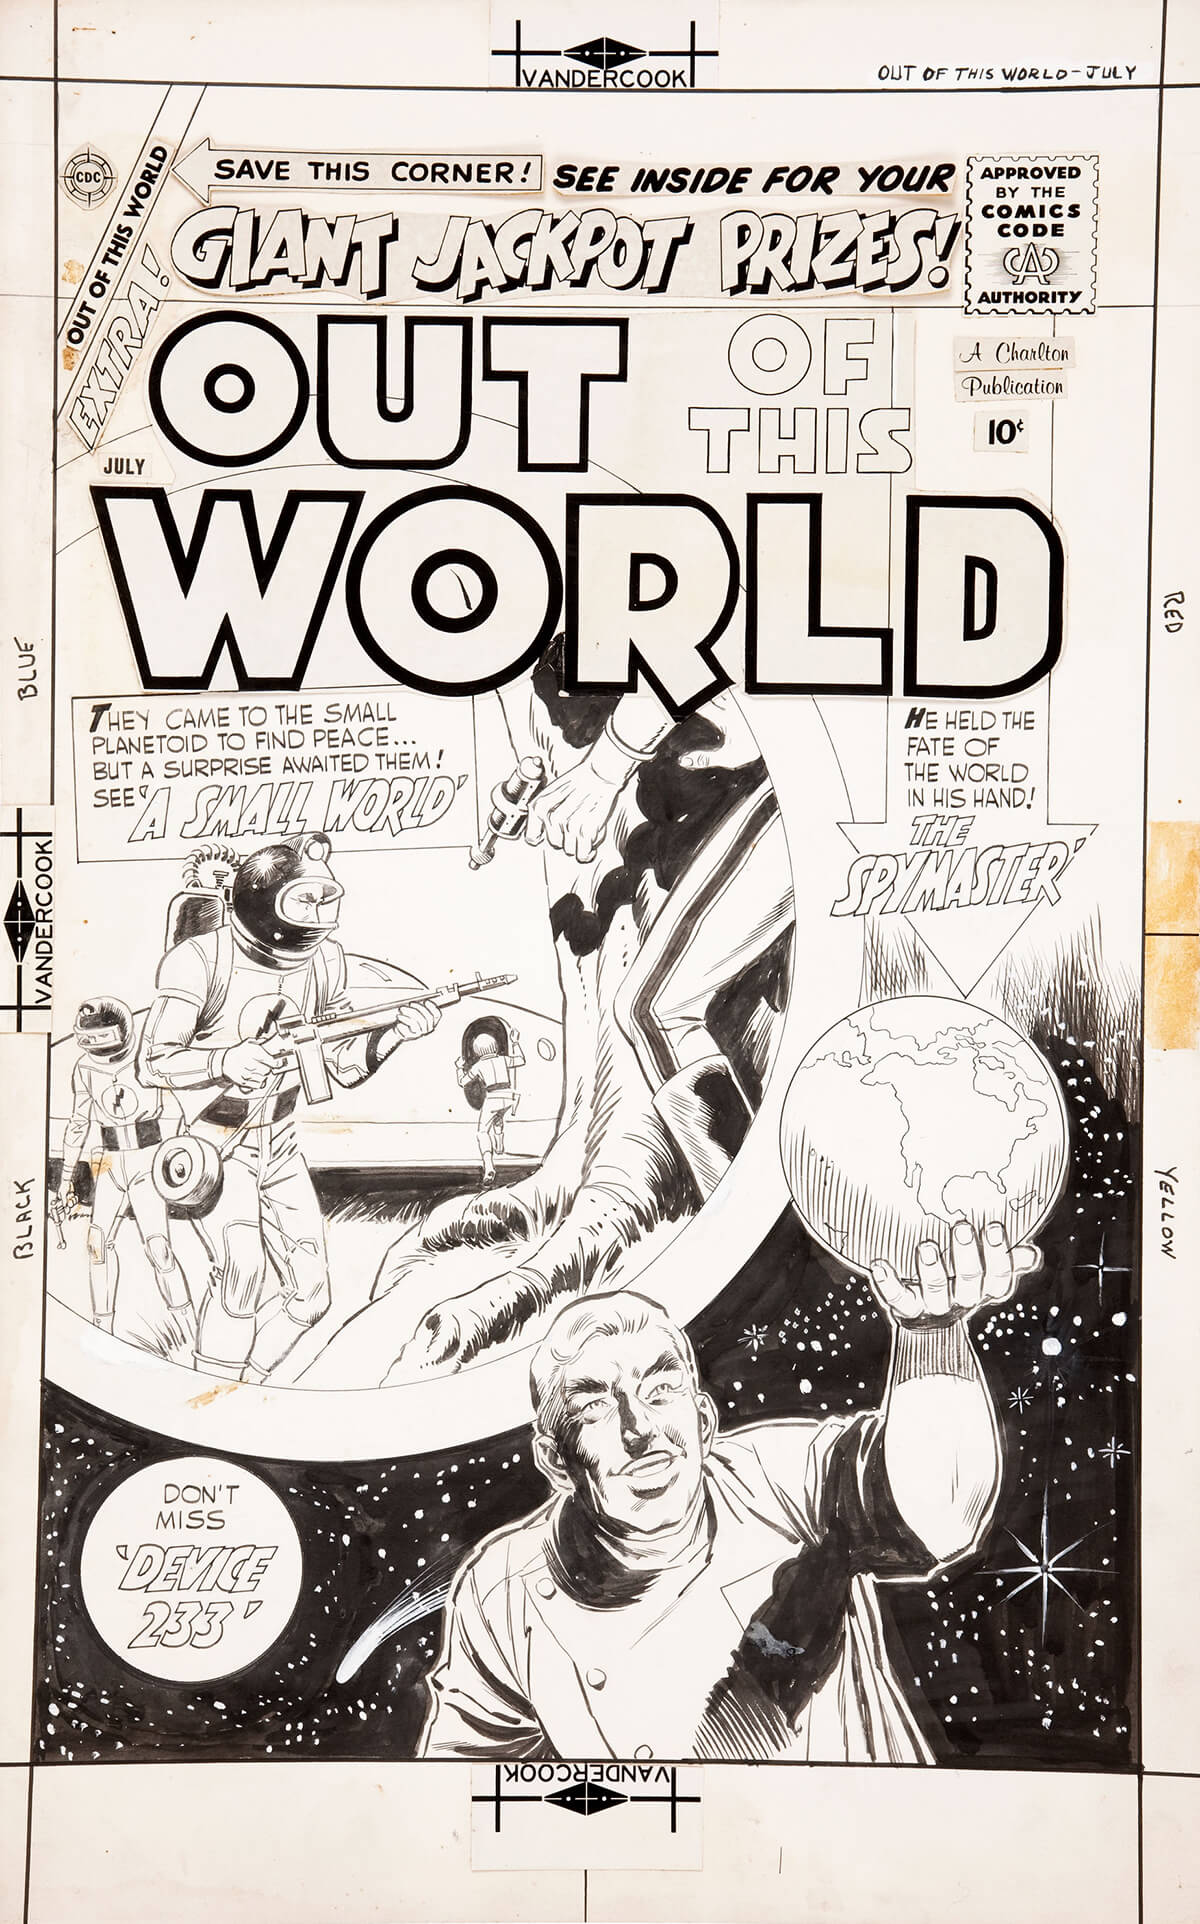 Out Of This World 14 Cover by Dick Giordano